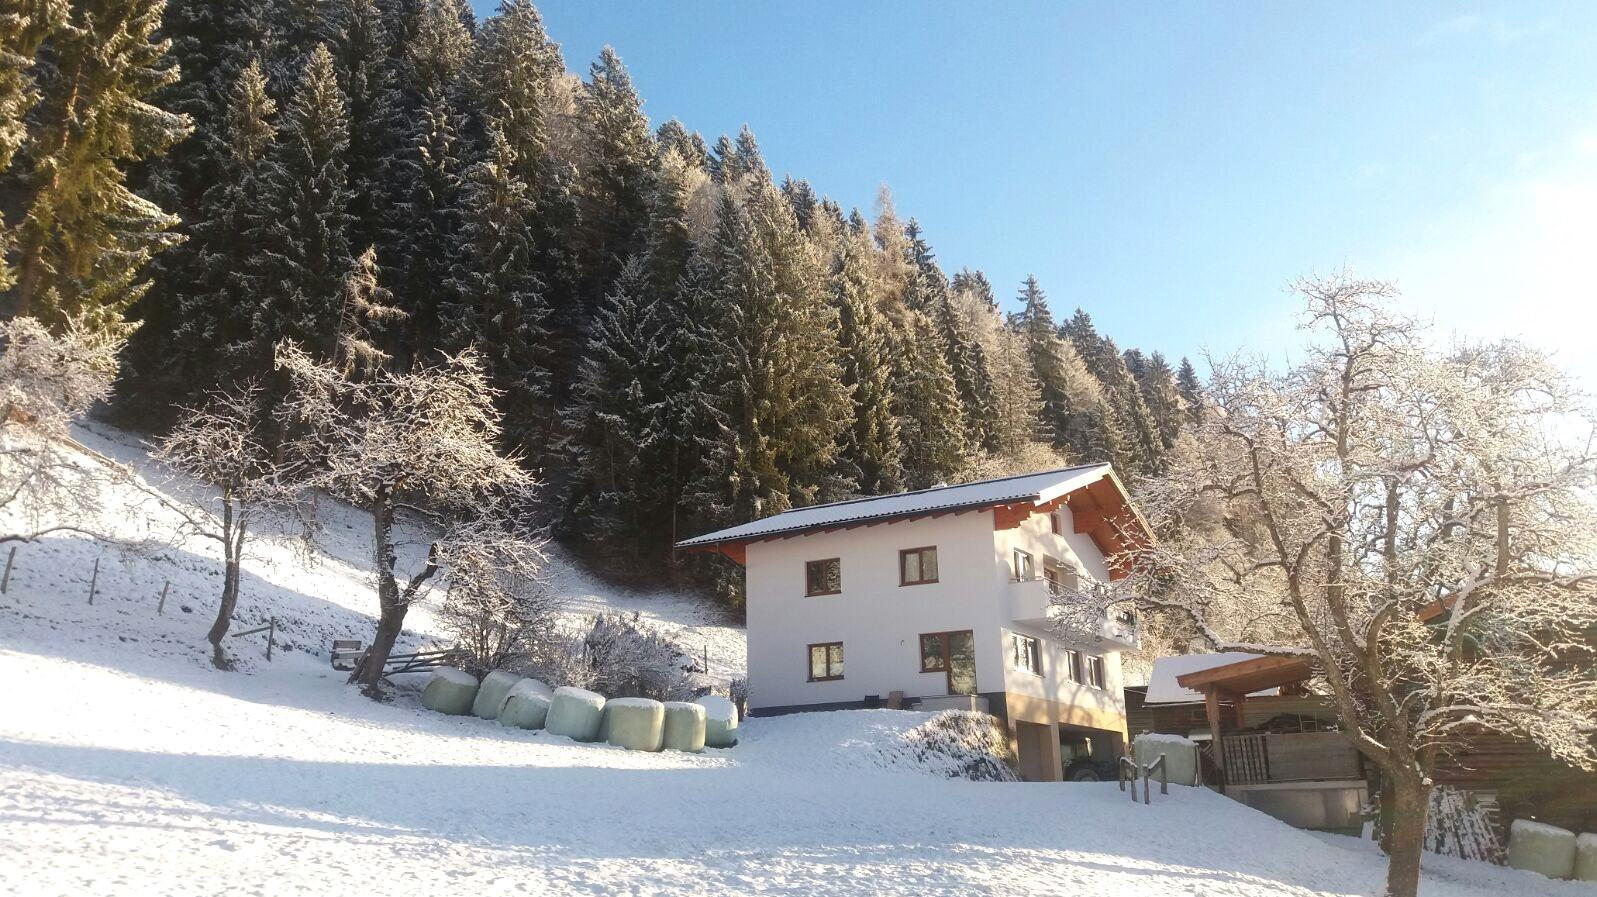 Appartement Haas in Werfenweng / Salzburger Land, Appartement Haas / Österreich